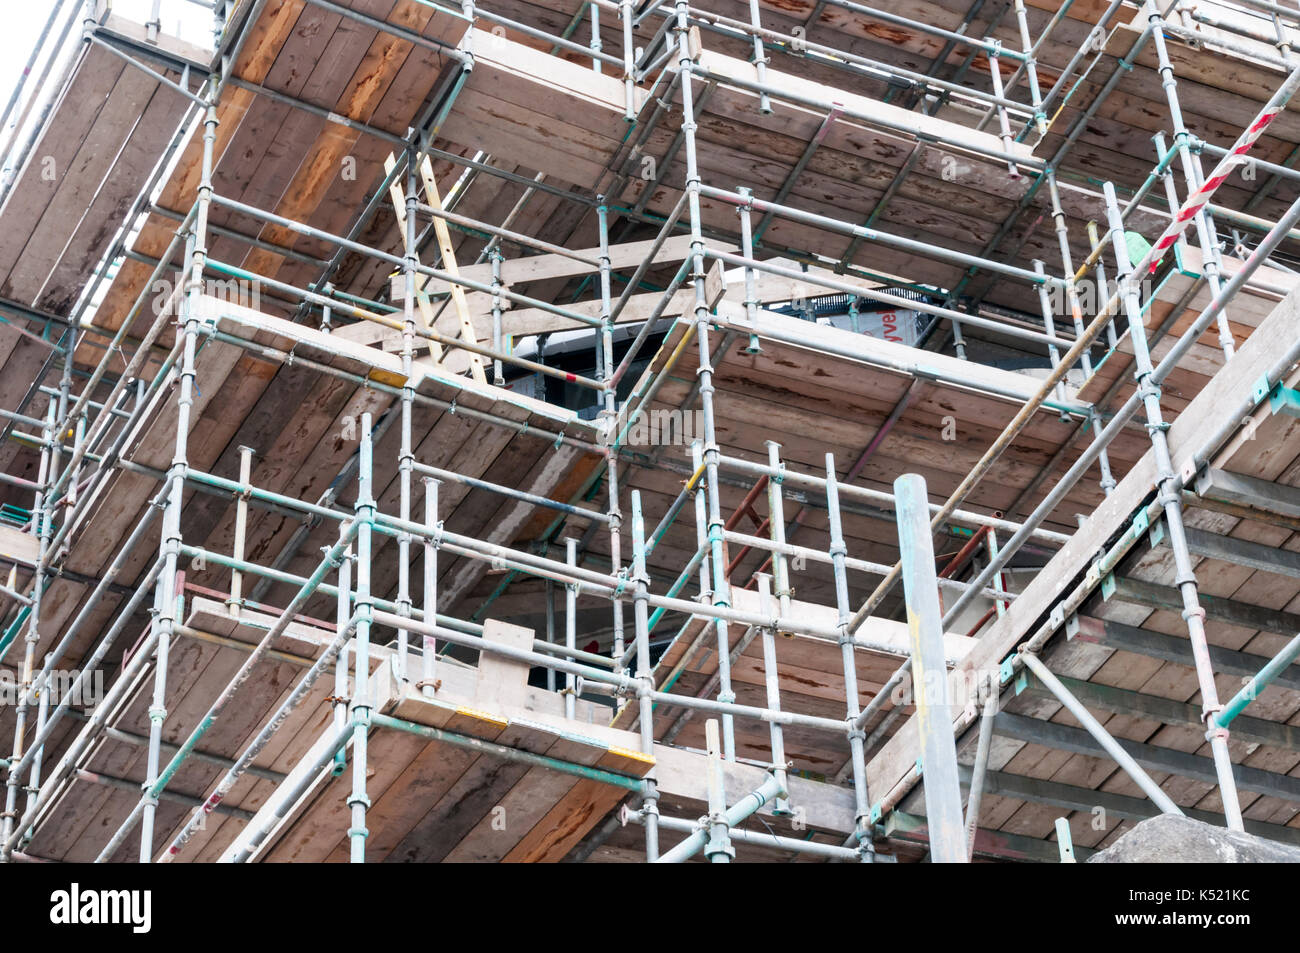 Comprehensive system of scaffolding and scaffold boards giving access to upper stories of building for maintenance work. - Stock Image